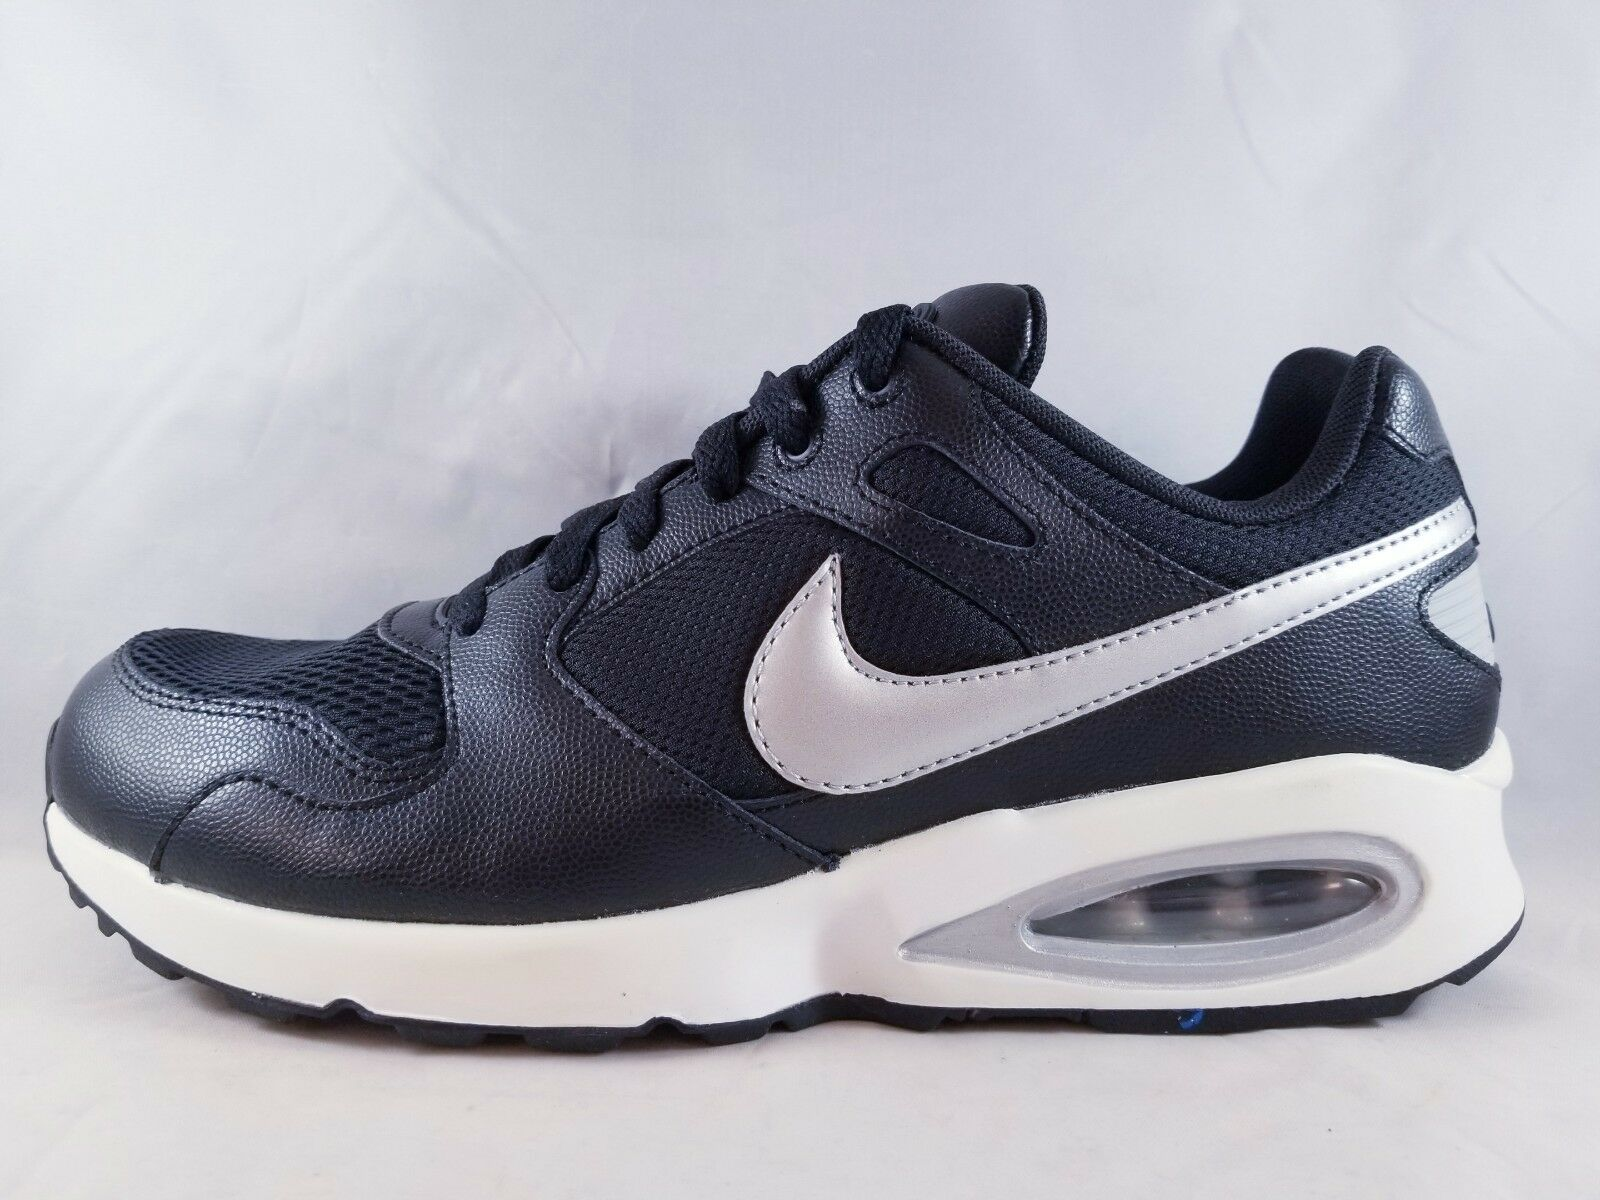 Nike Air Max Coliseum RCR Women's Running Shoe 553441 001 Size 10